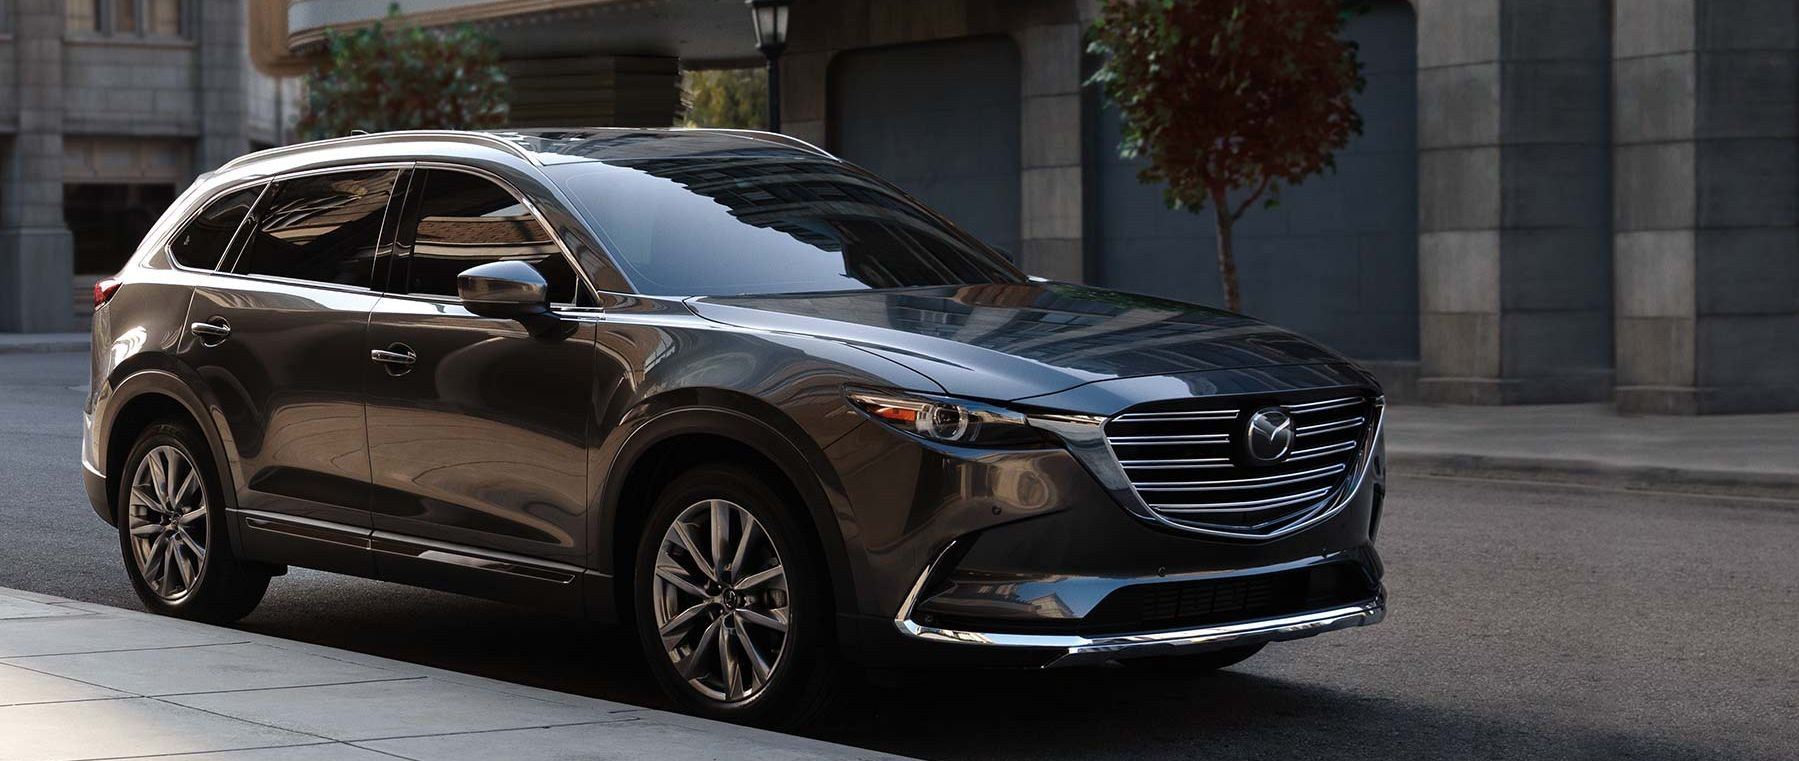 2019 Mazda CX-9 for Sale near Fullerton, CA